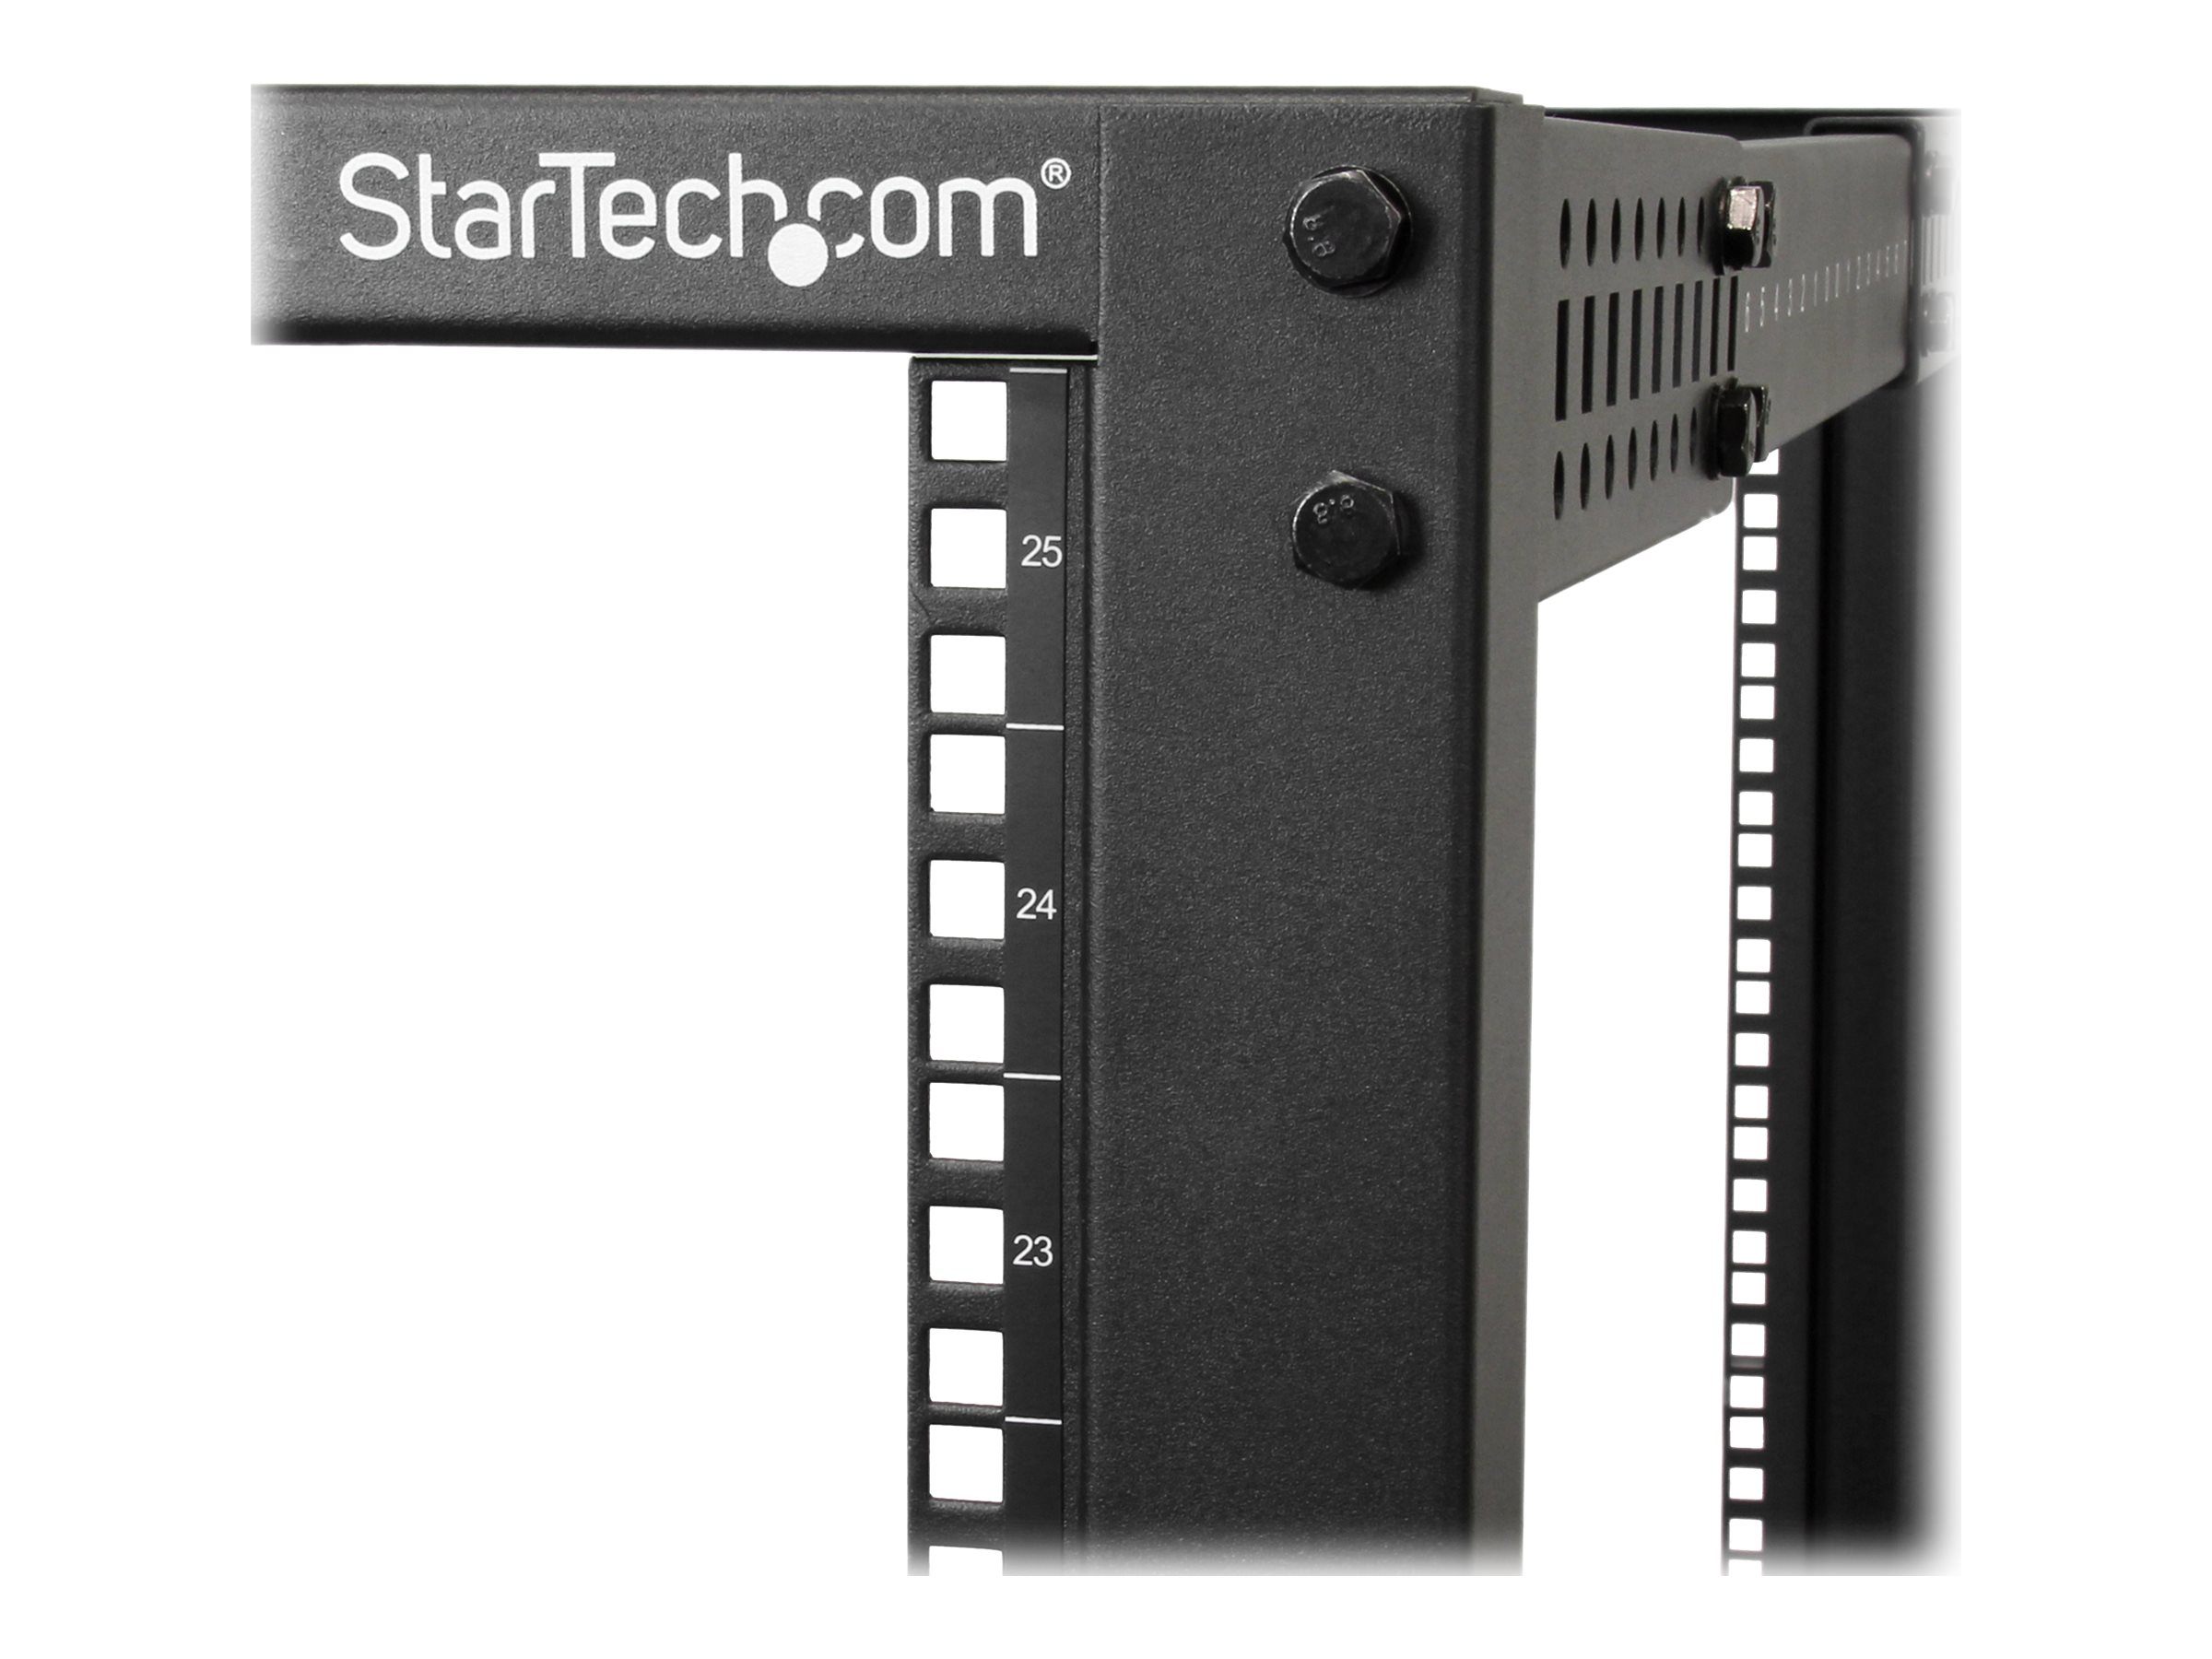 StarTech.com 25U Adjustable Depth Open Frame 4 Post Server Rack with Casters Levelers and Cable Management Hooks, 4POSTRACK25U